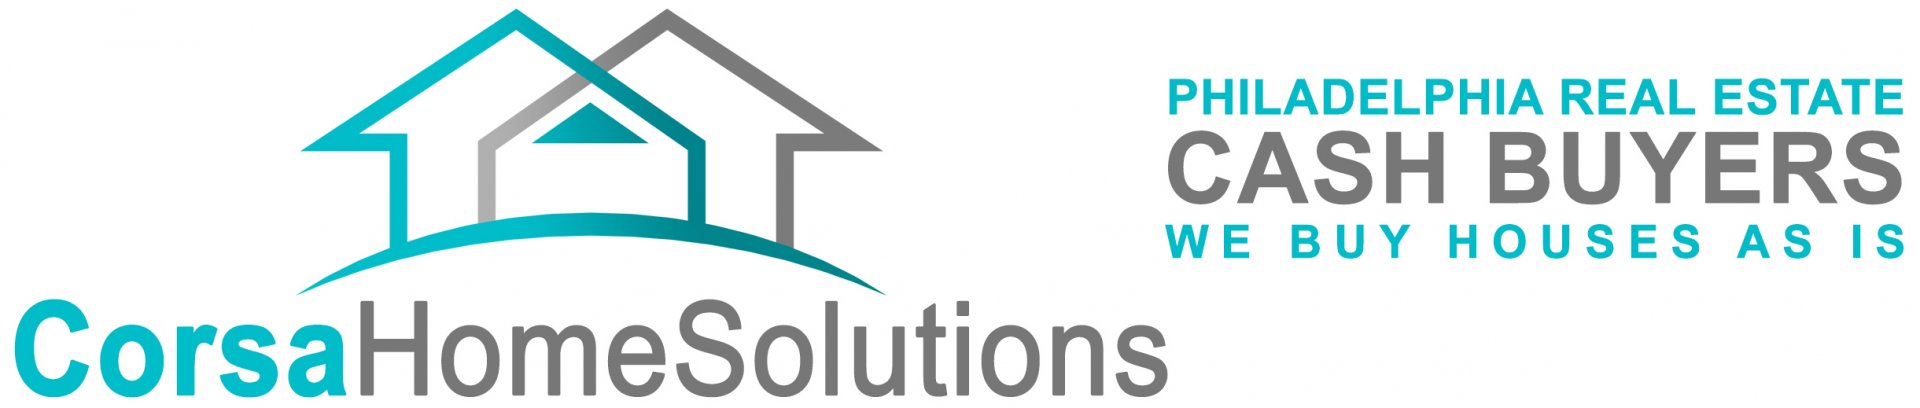 Corsa Home Solutions logo